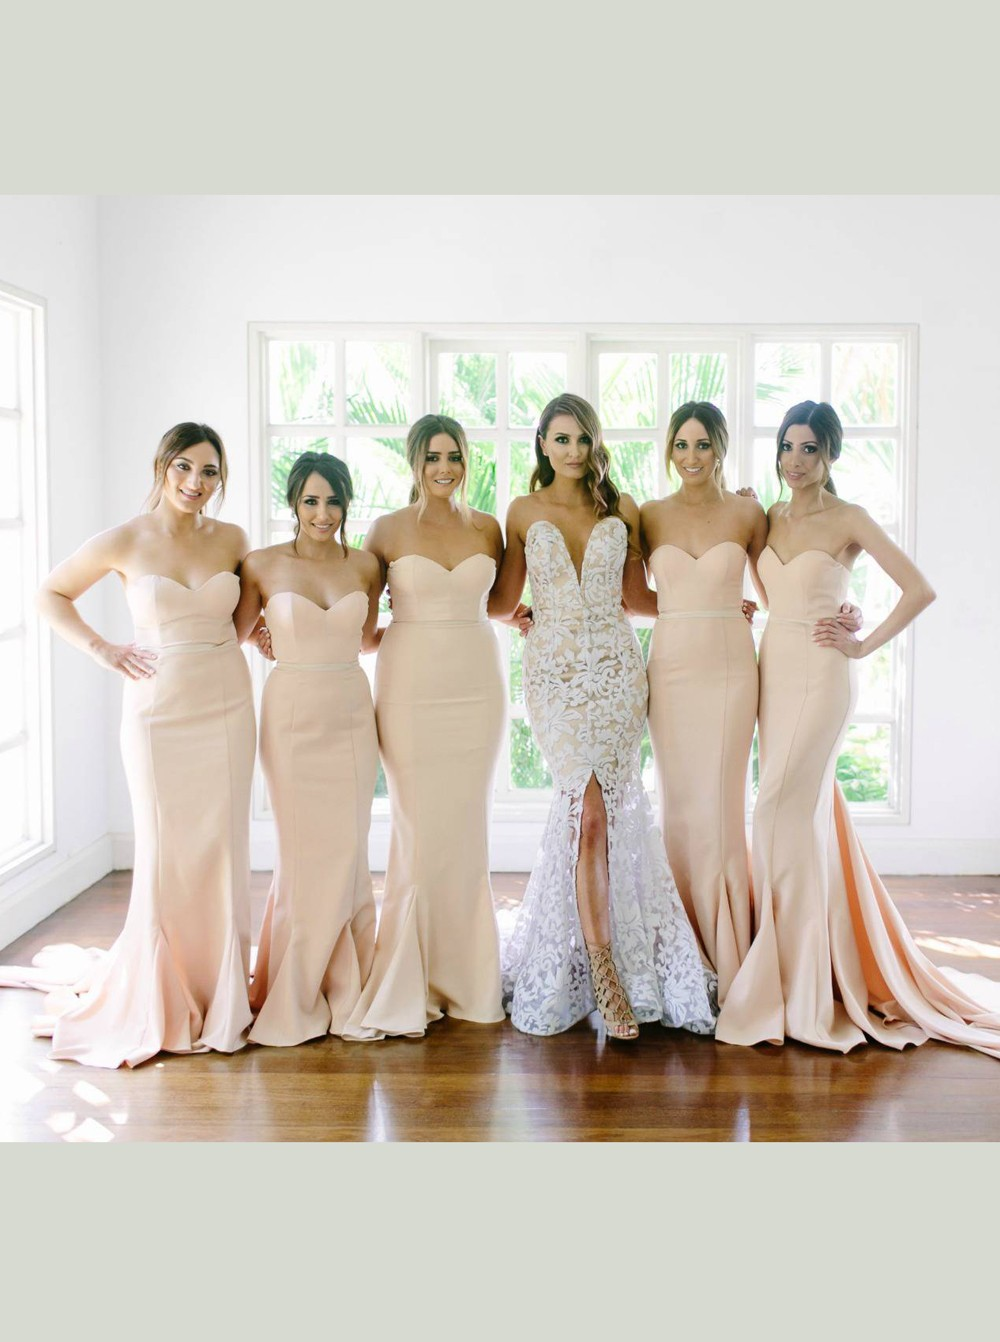 Bridesmaid dressesplus size bridesmaid dresseschampagne bridesmaid dressesplus size bridesmaid dresseschampagne bridesmaid dress mermaid bridesmaid dress ombrellifo Choice Image